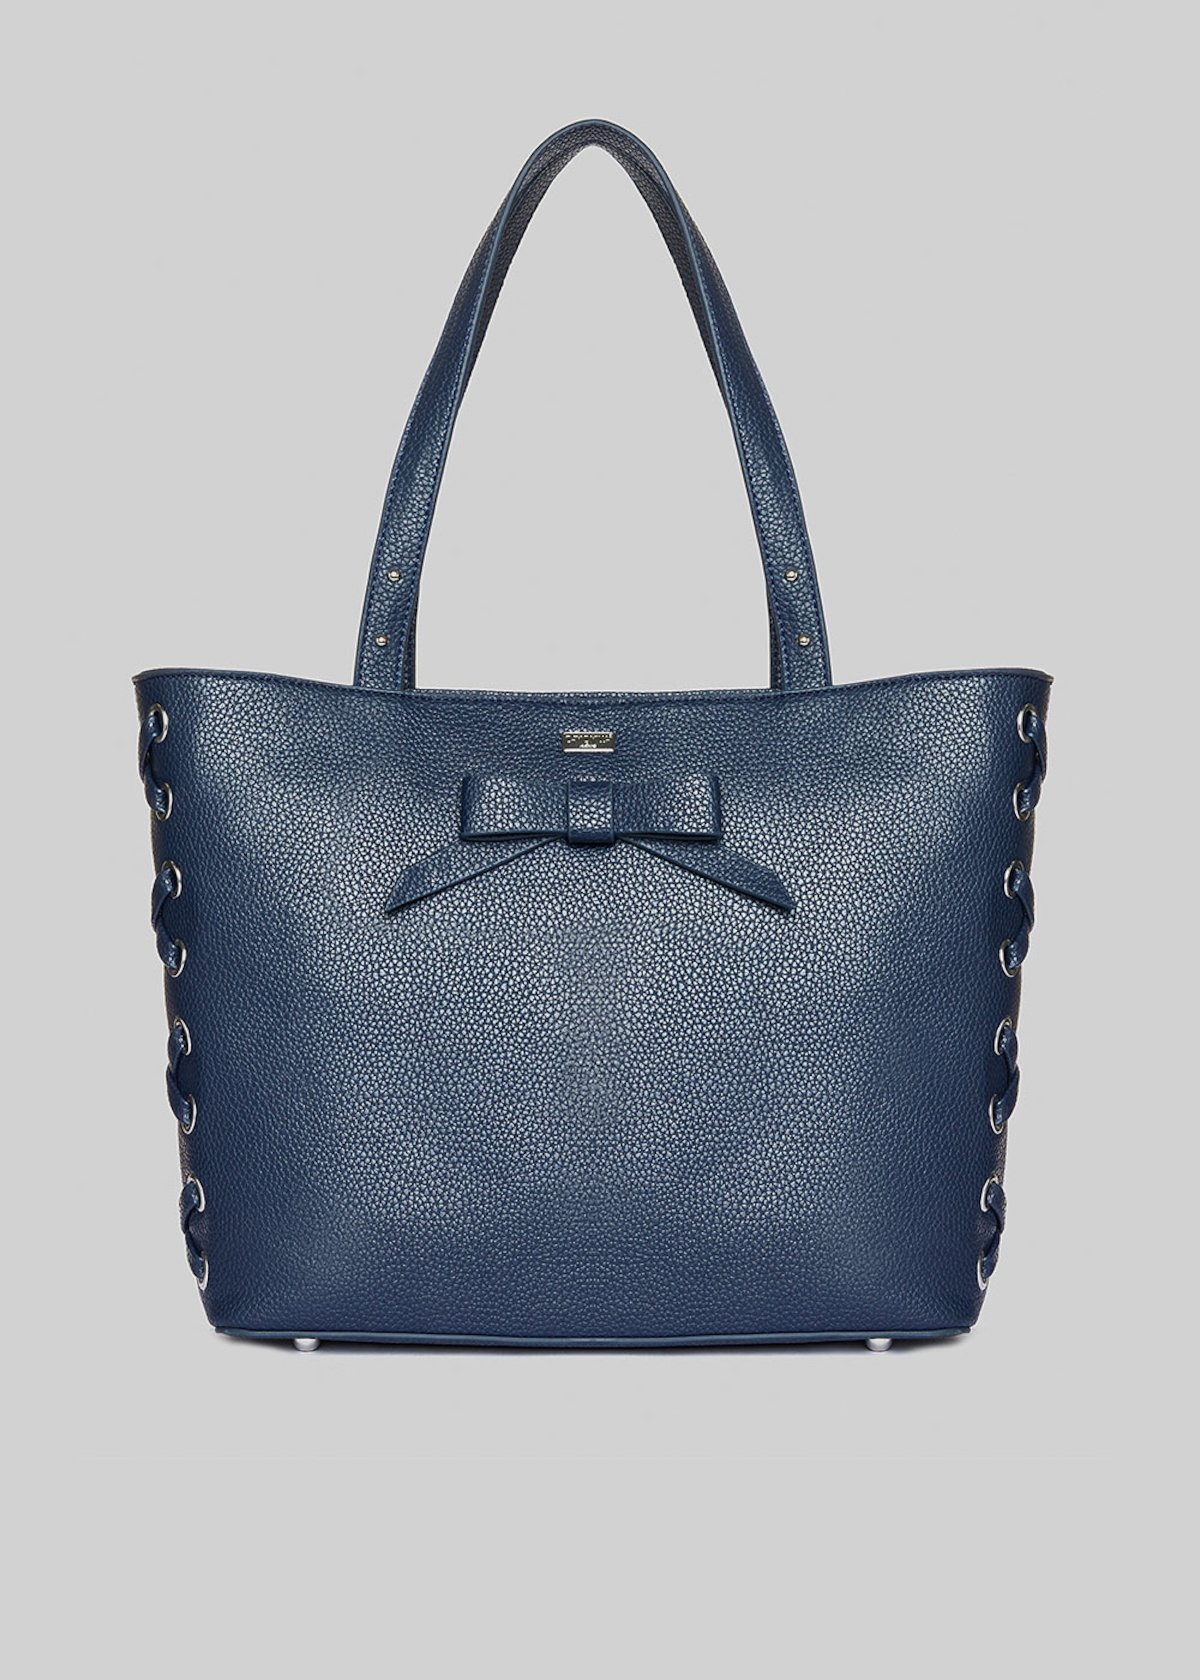 Shopping bag Bessy in ecopelle e nastrino in velluto - Dark Blue